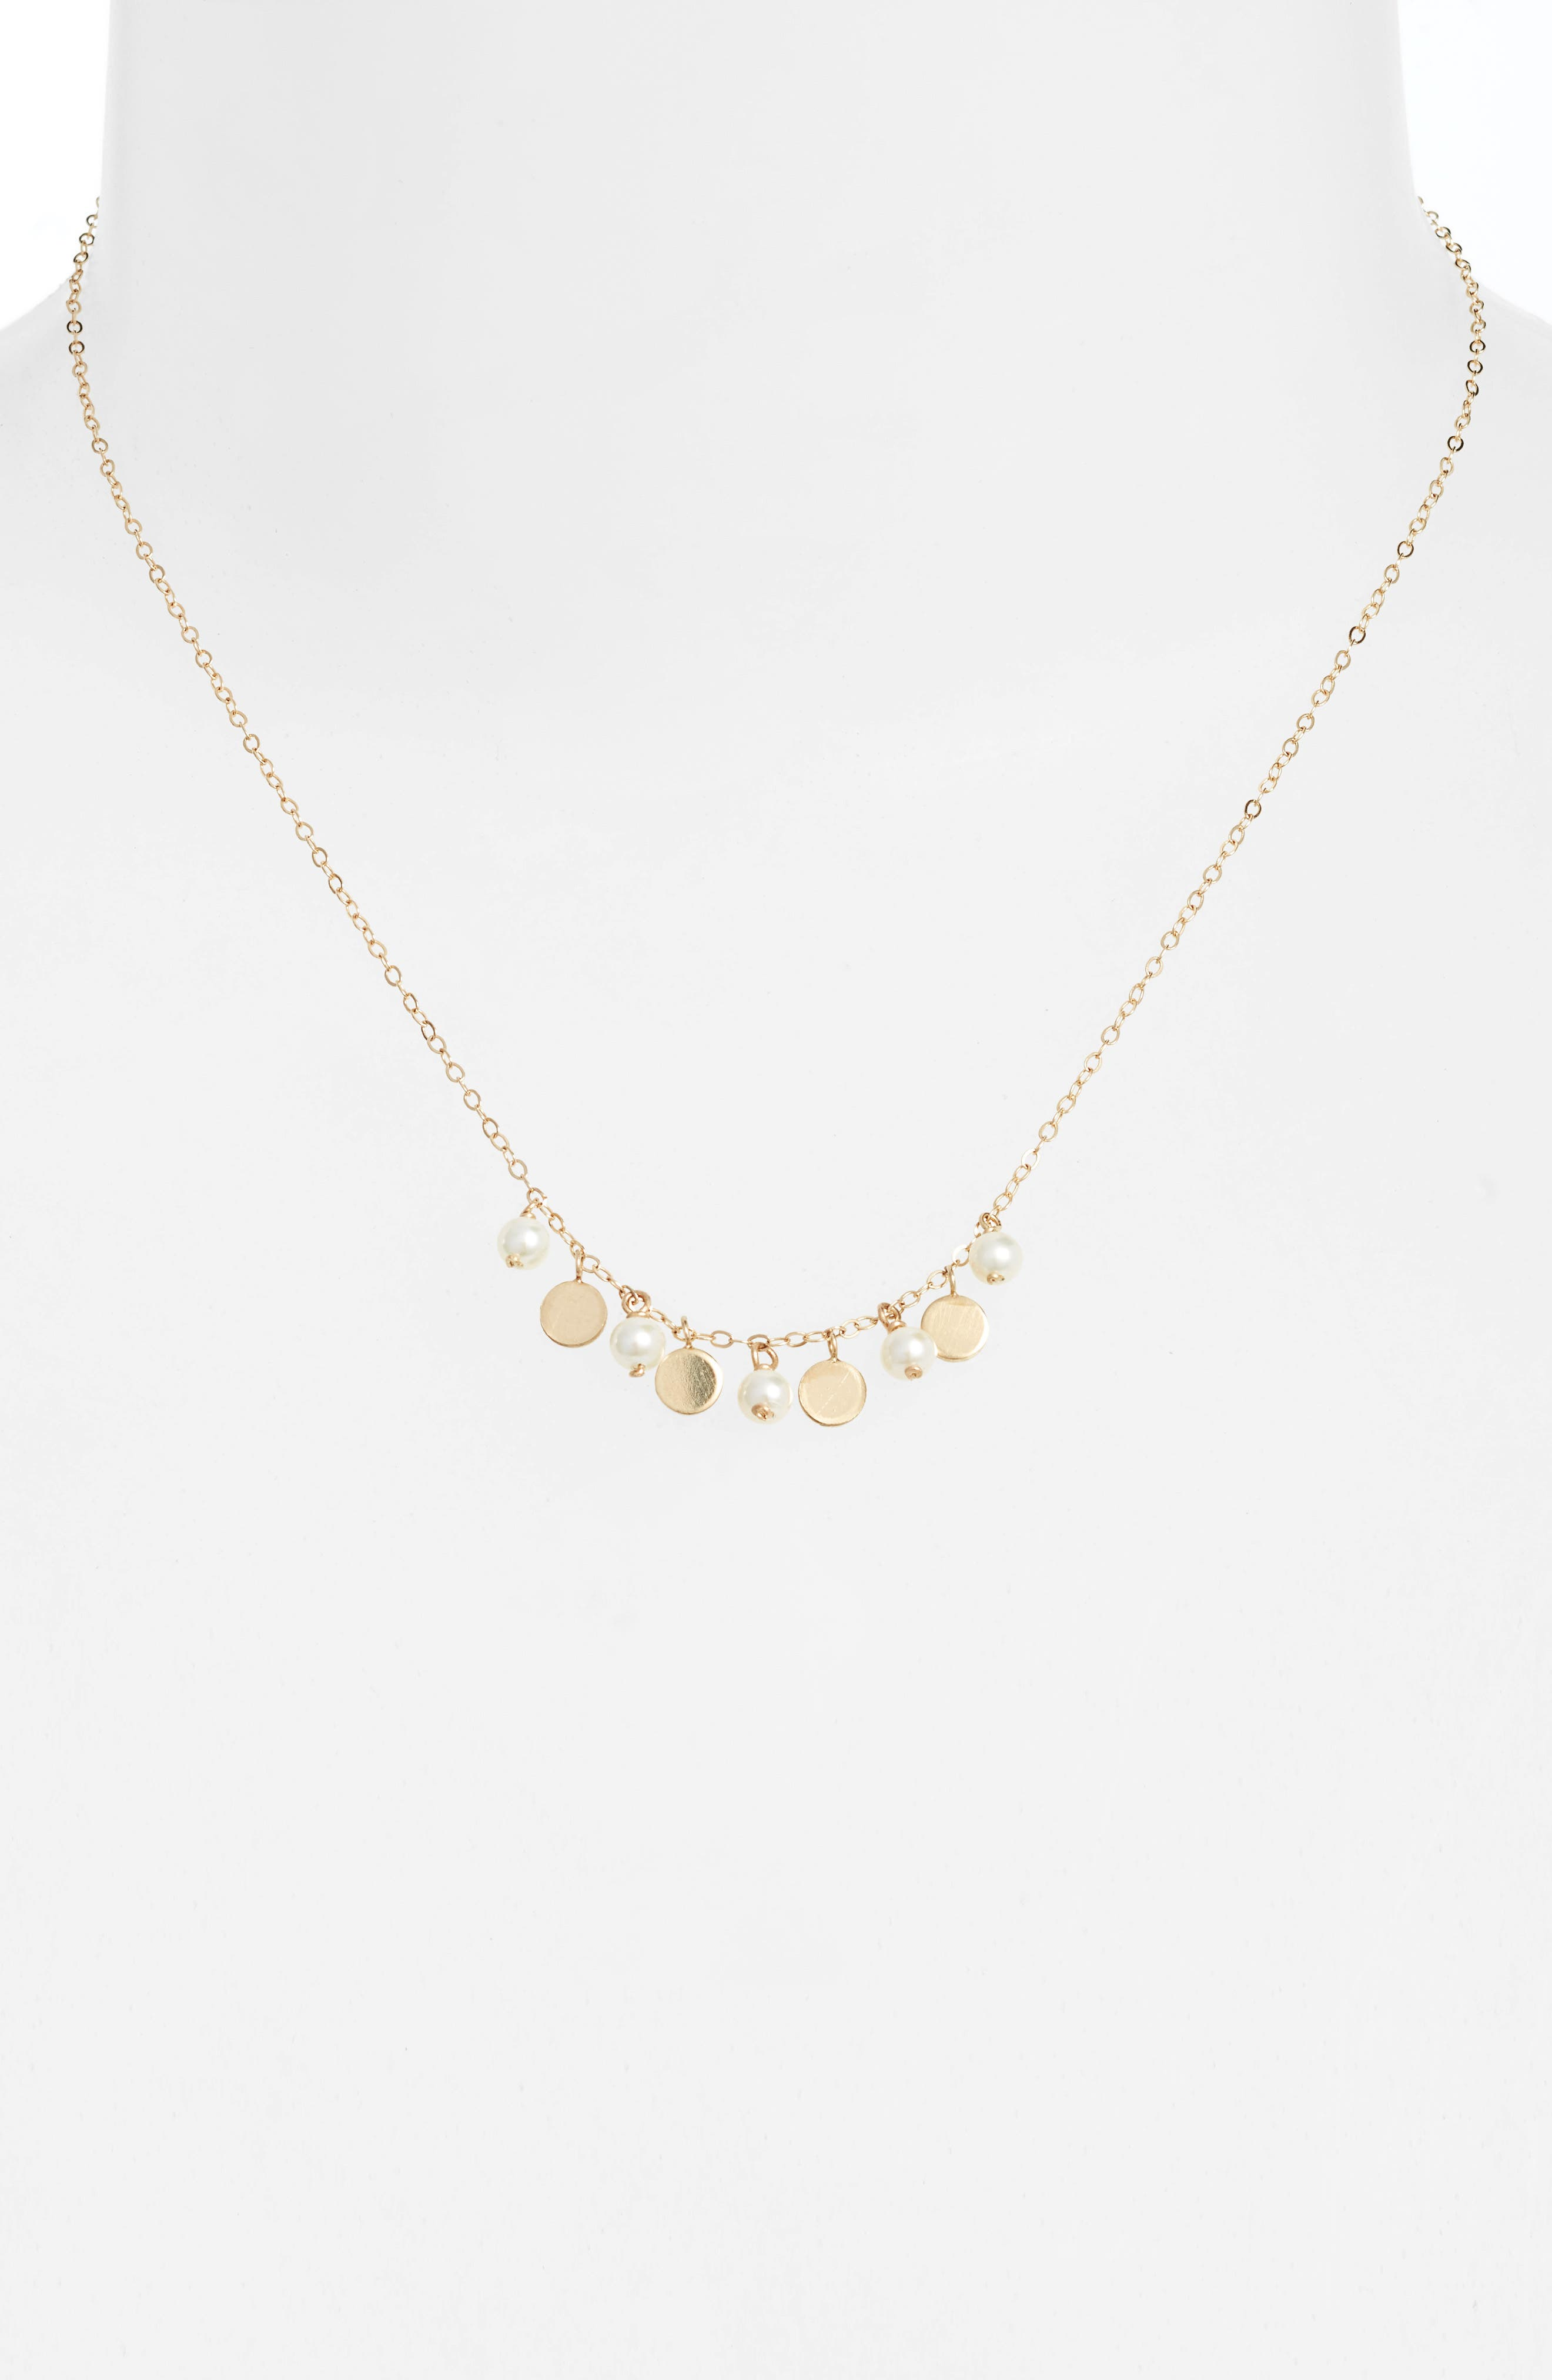 Confetti Pearl Gold Necklace,                             Alternate thumbnail 2, color,                             YELLOW GOLD/ WHITE PEARL